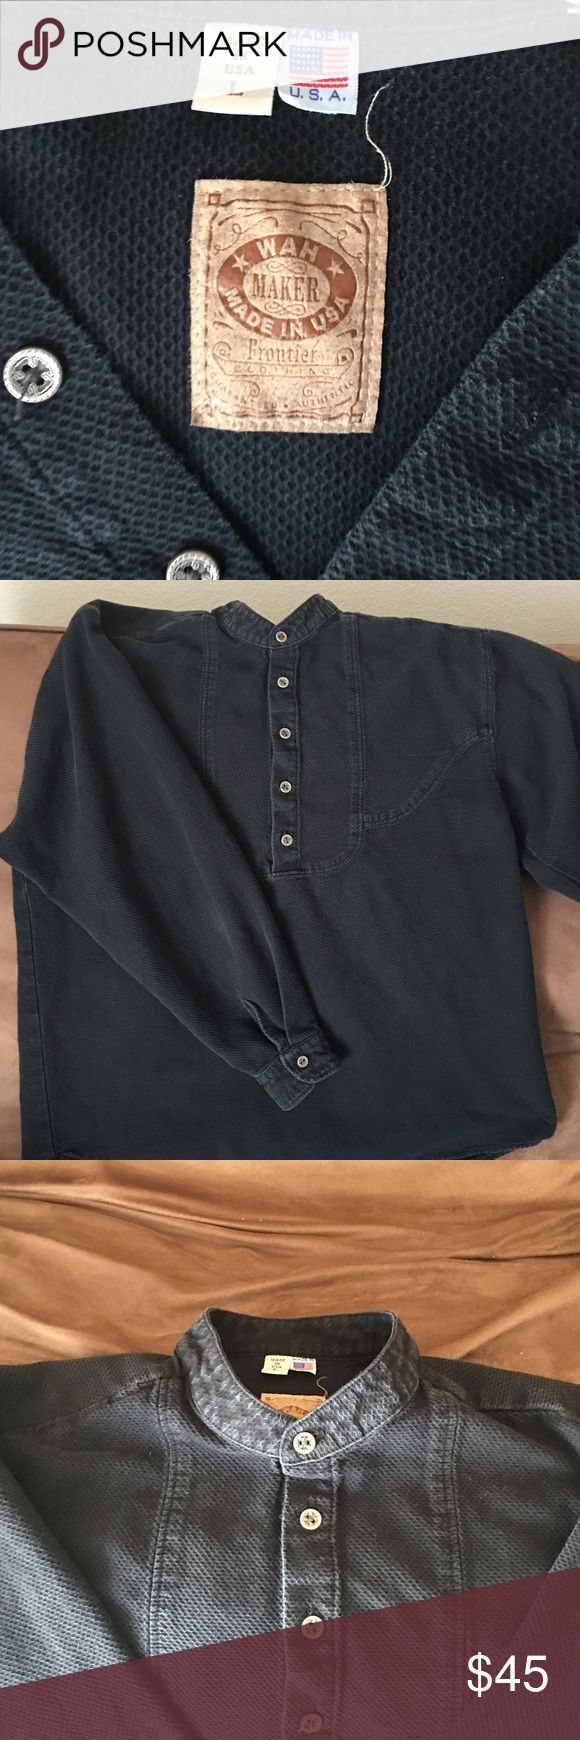 """Black Scully WahMaker Hardwick Shirt Men's WahMaker Black Hardwick Shirt. Size: Large. WahMaker is a brand known for its authentic Western wear from back in the turn of 20th century.  Made in U.S.A. Metal buttons. The shirt is nice and I would keep but it's not my size. From a site selling shirt, """"This distinguished scallop bib front has an air of sophistication, It features a band collar and four-hole pewter alps buttons. 100% cotton. Machine wash cold and hang dry"""" #WahMaker #WesternShirt…"""